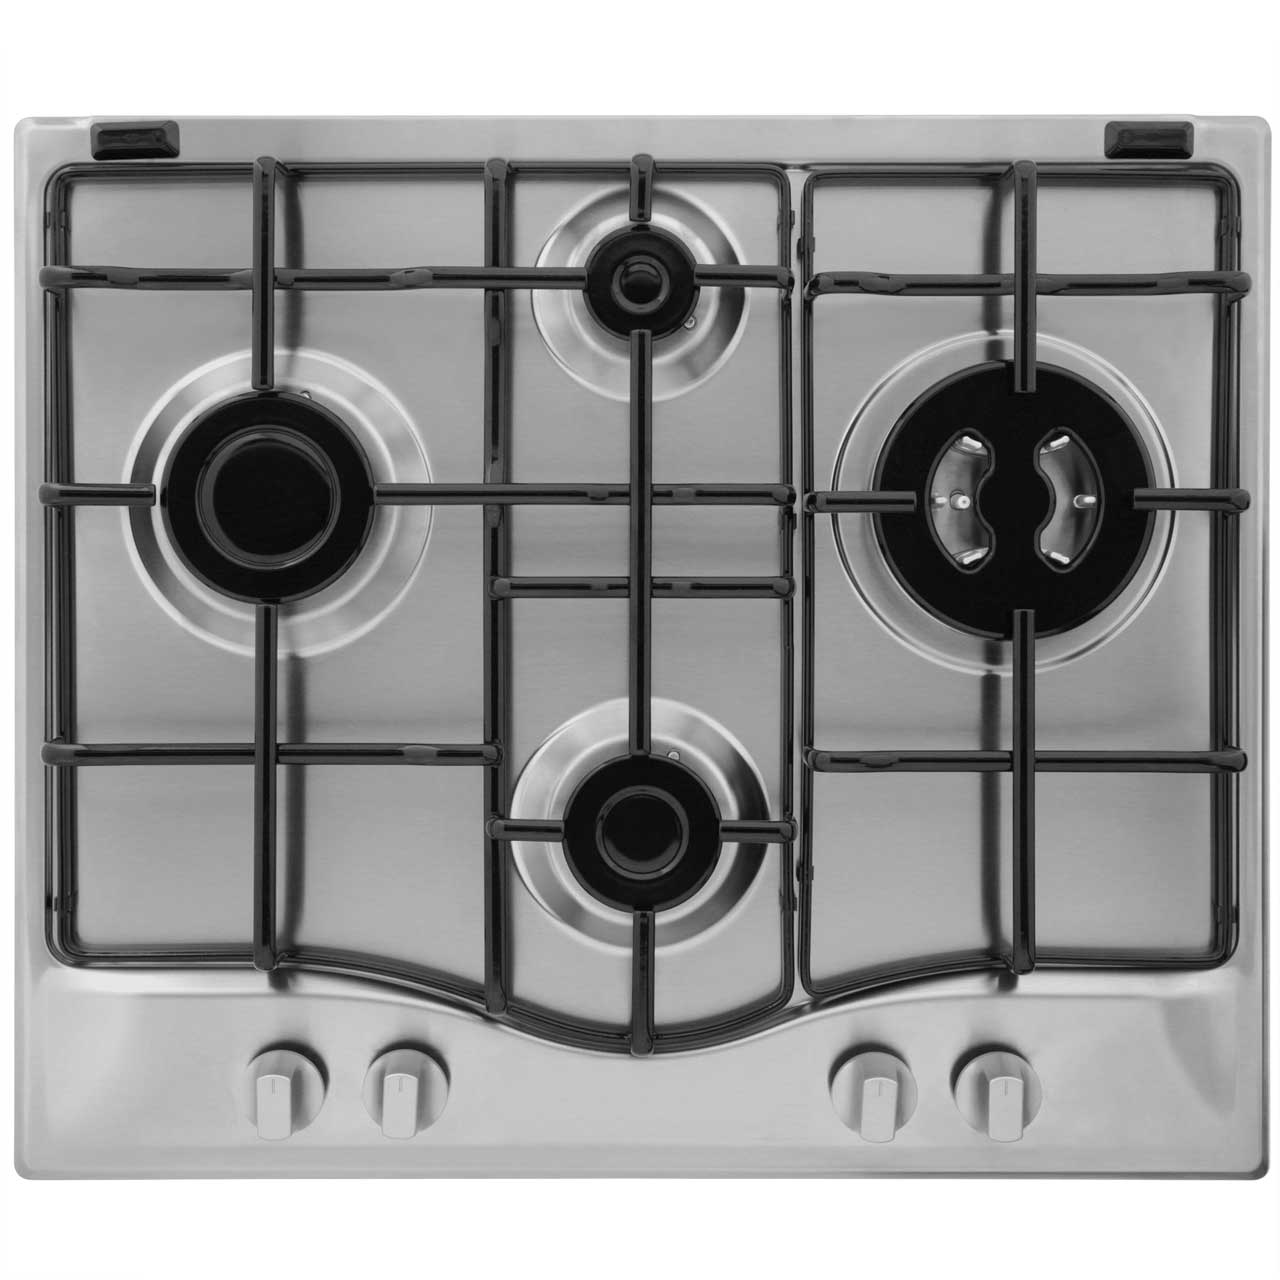 Hotpoint GC640TX Integrated Gas Hob in Stainless Steel